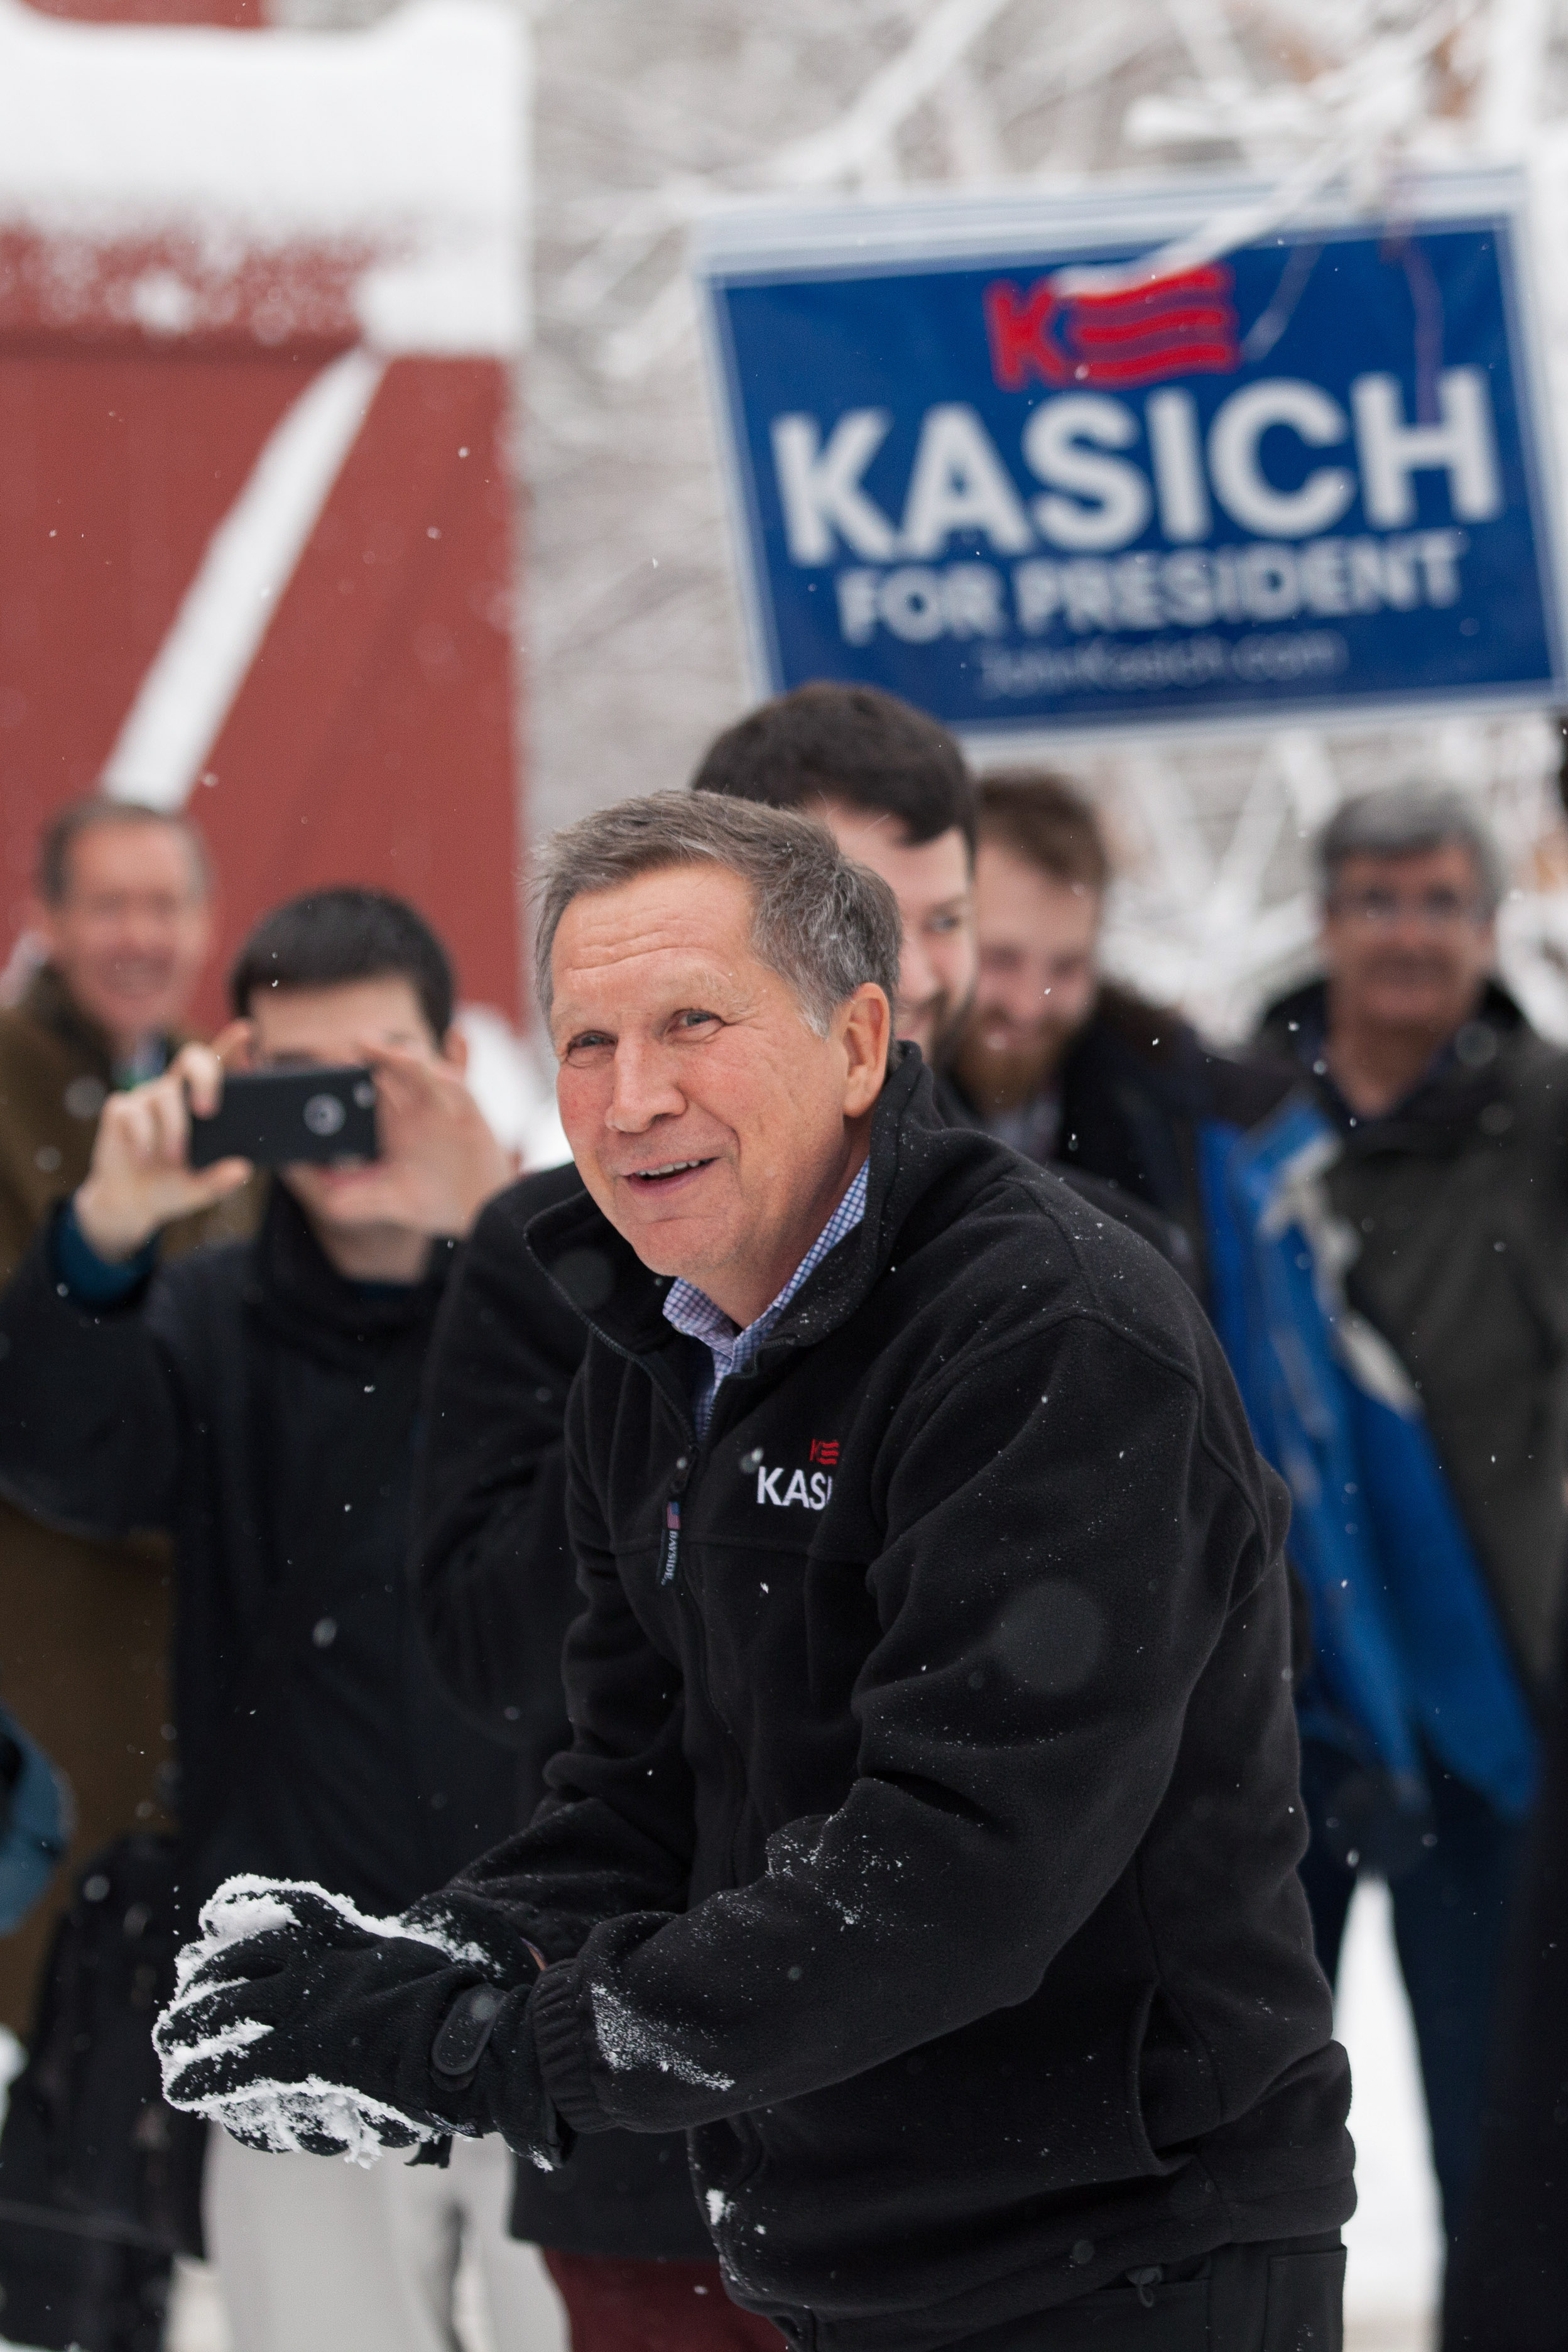 John Kasich smiles during a snowball fight following a town hall on Feb. 5 in Hollis, N.H.